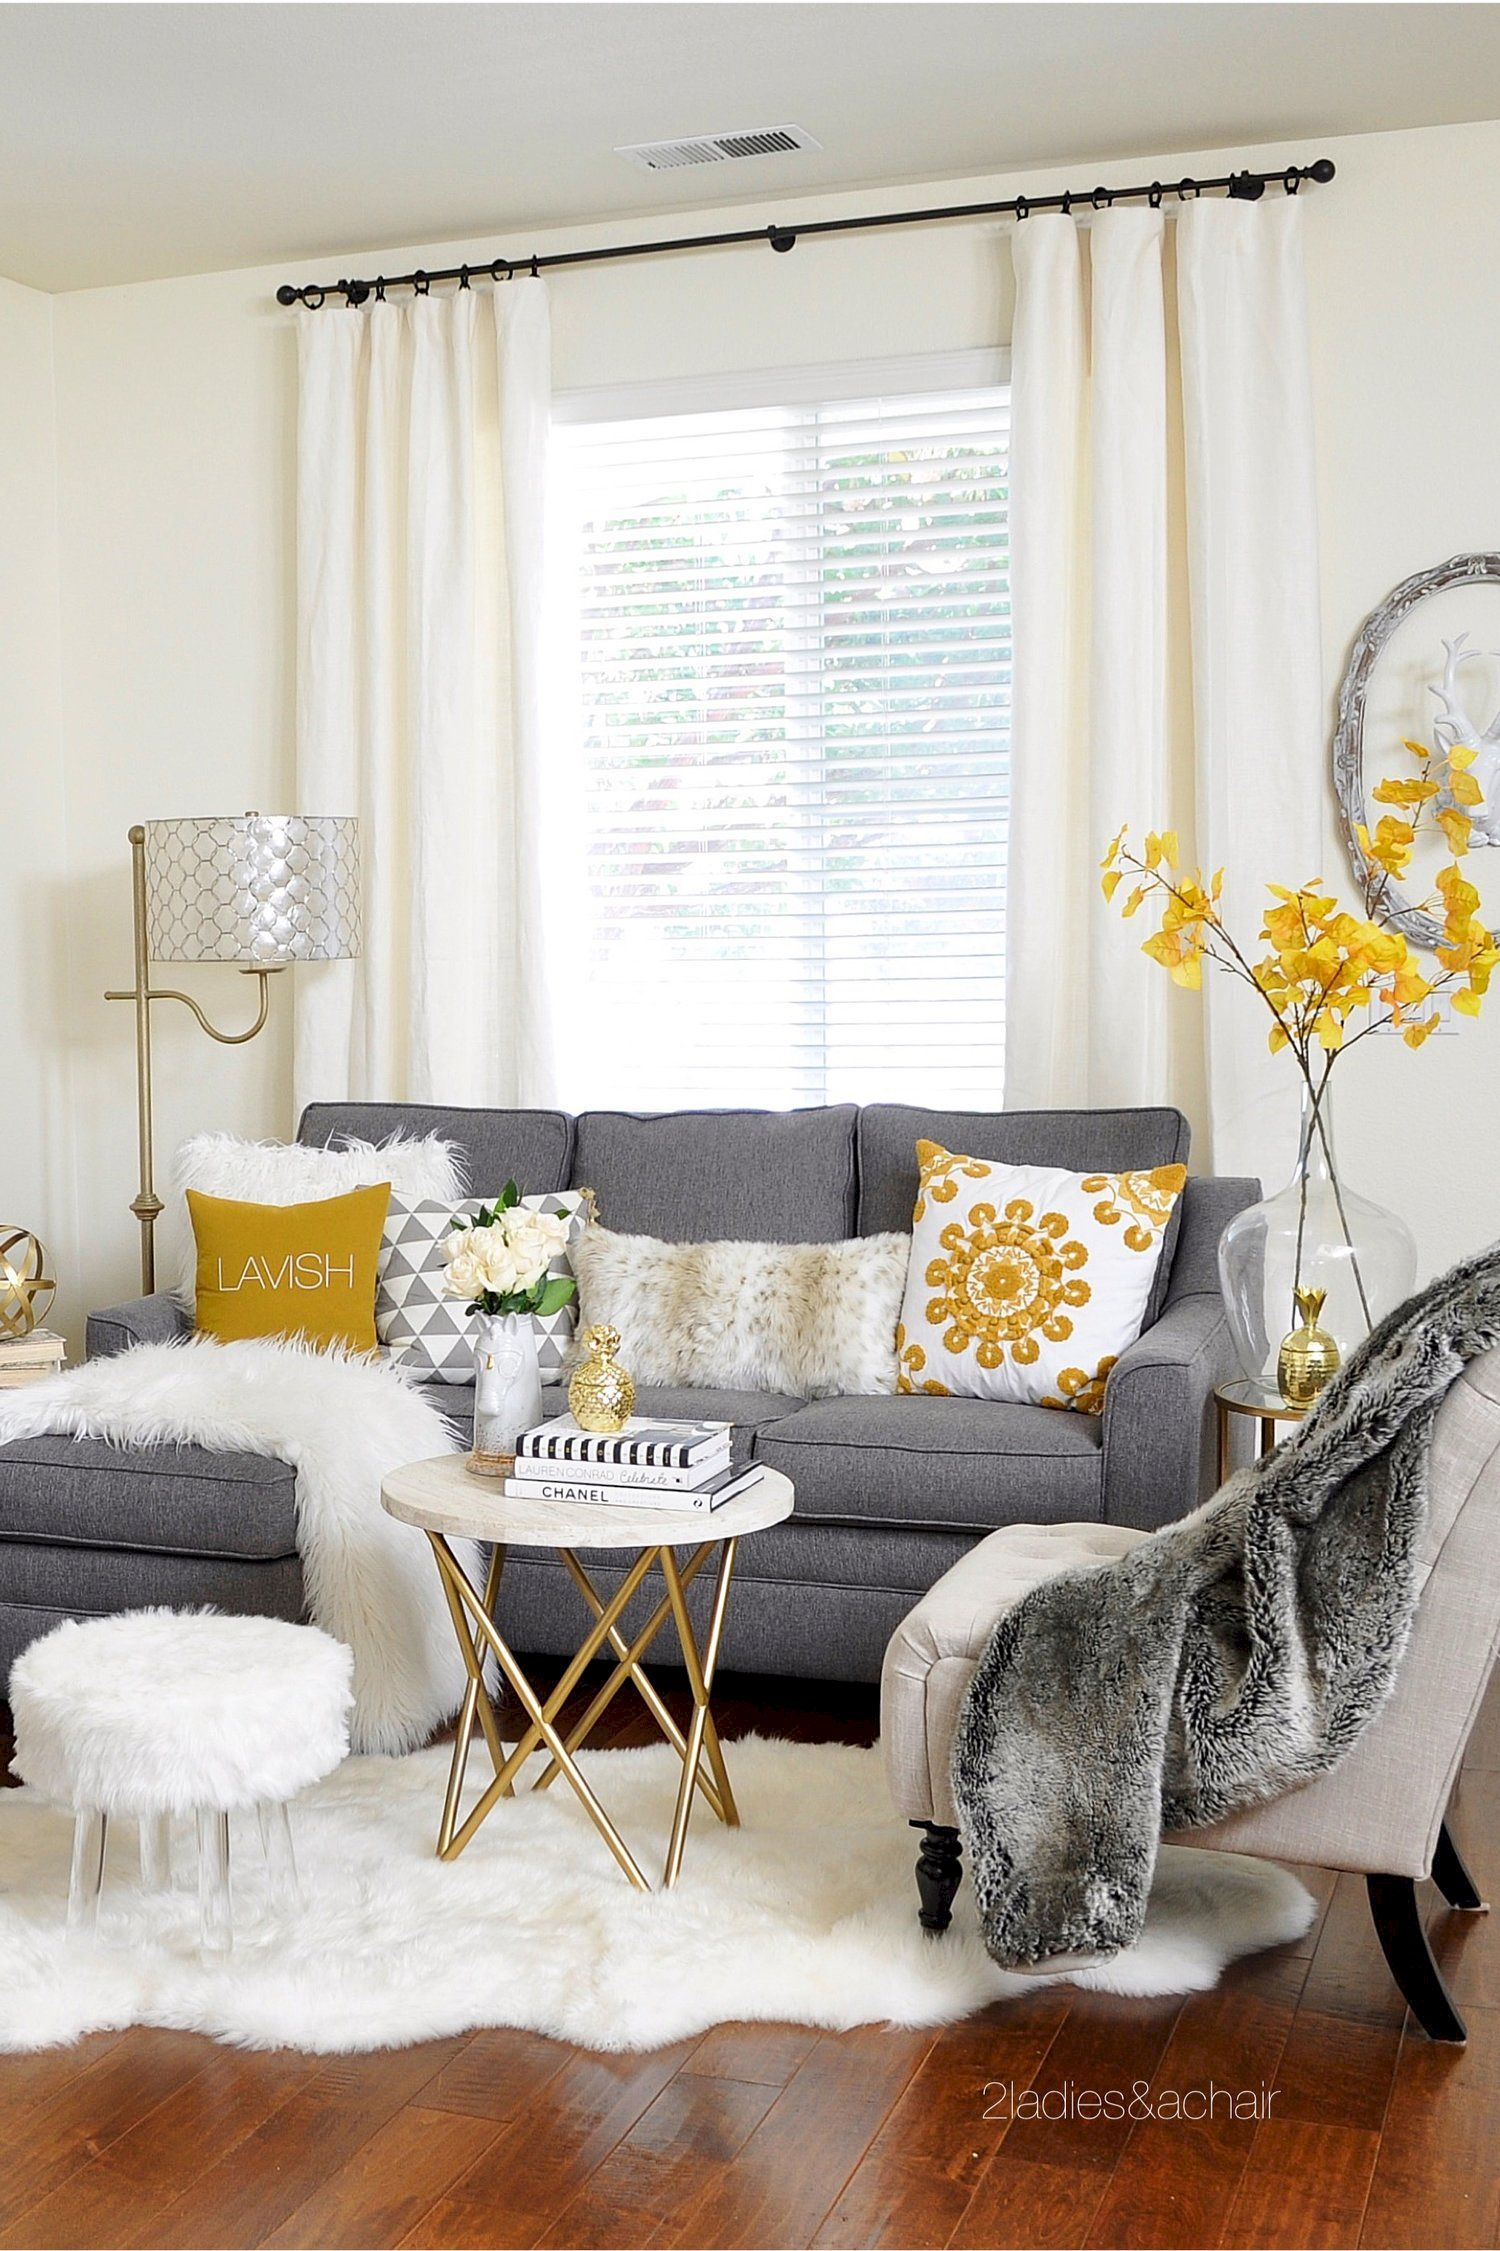 Living Room design ideas, inspiration & pictures